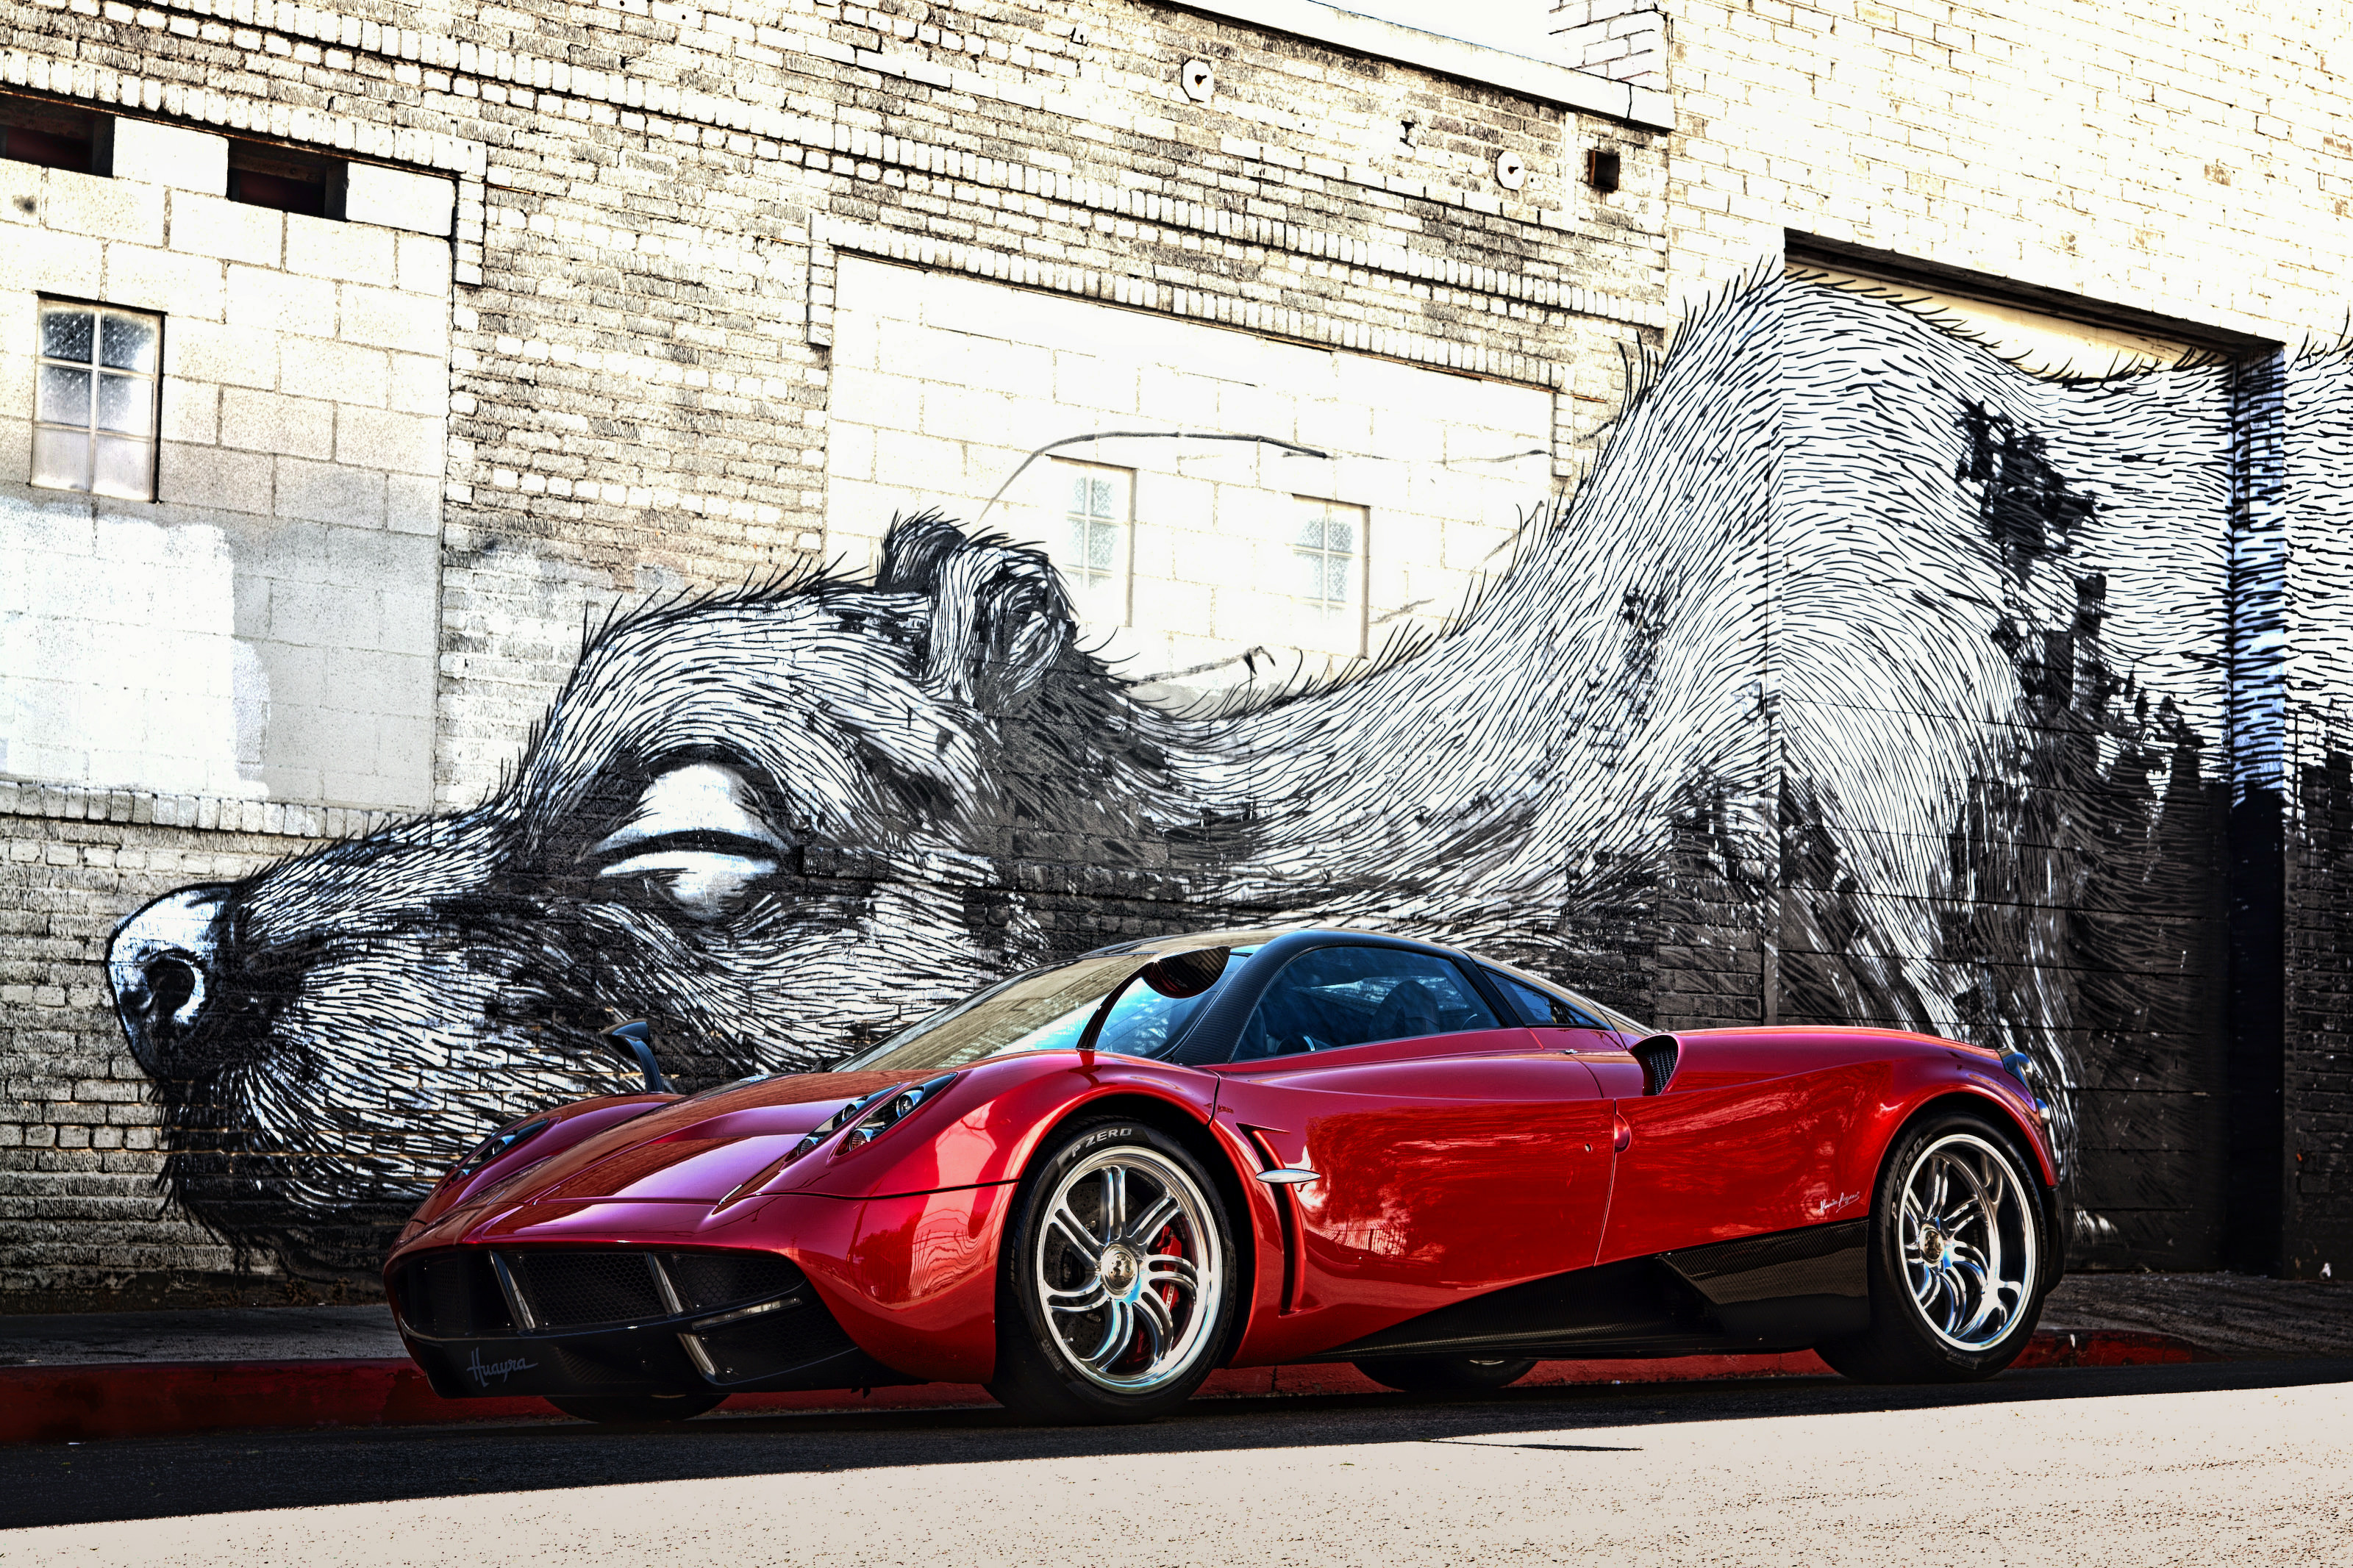 Red Pagani Car Background